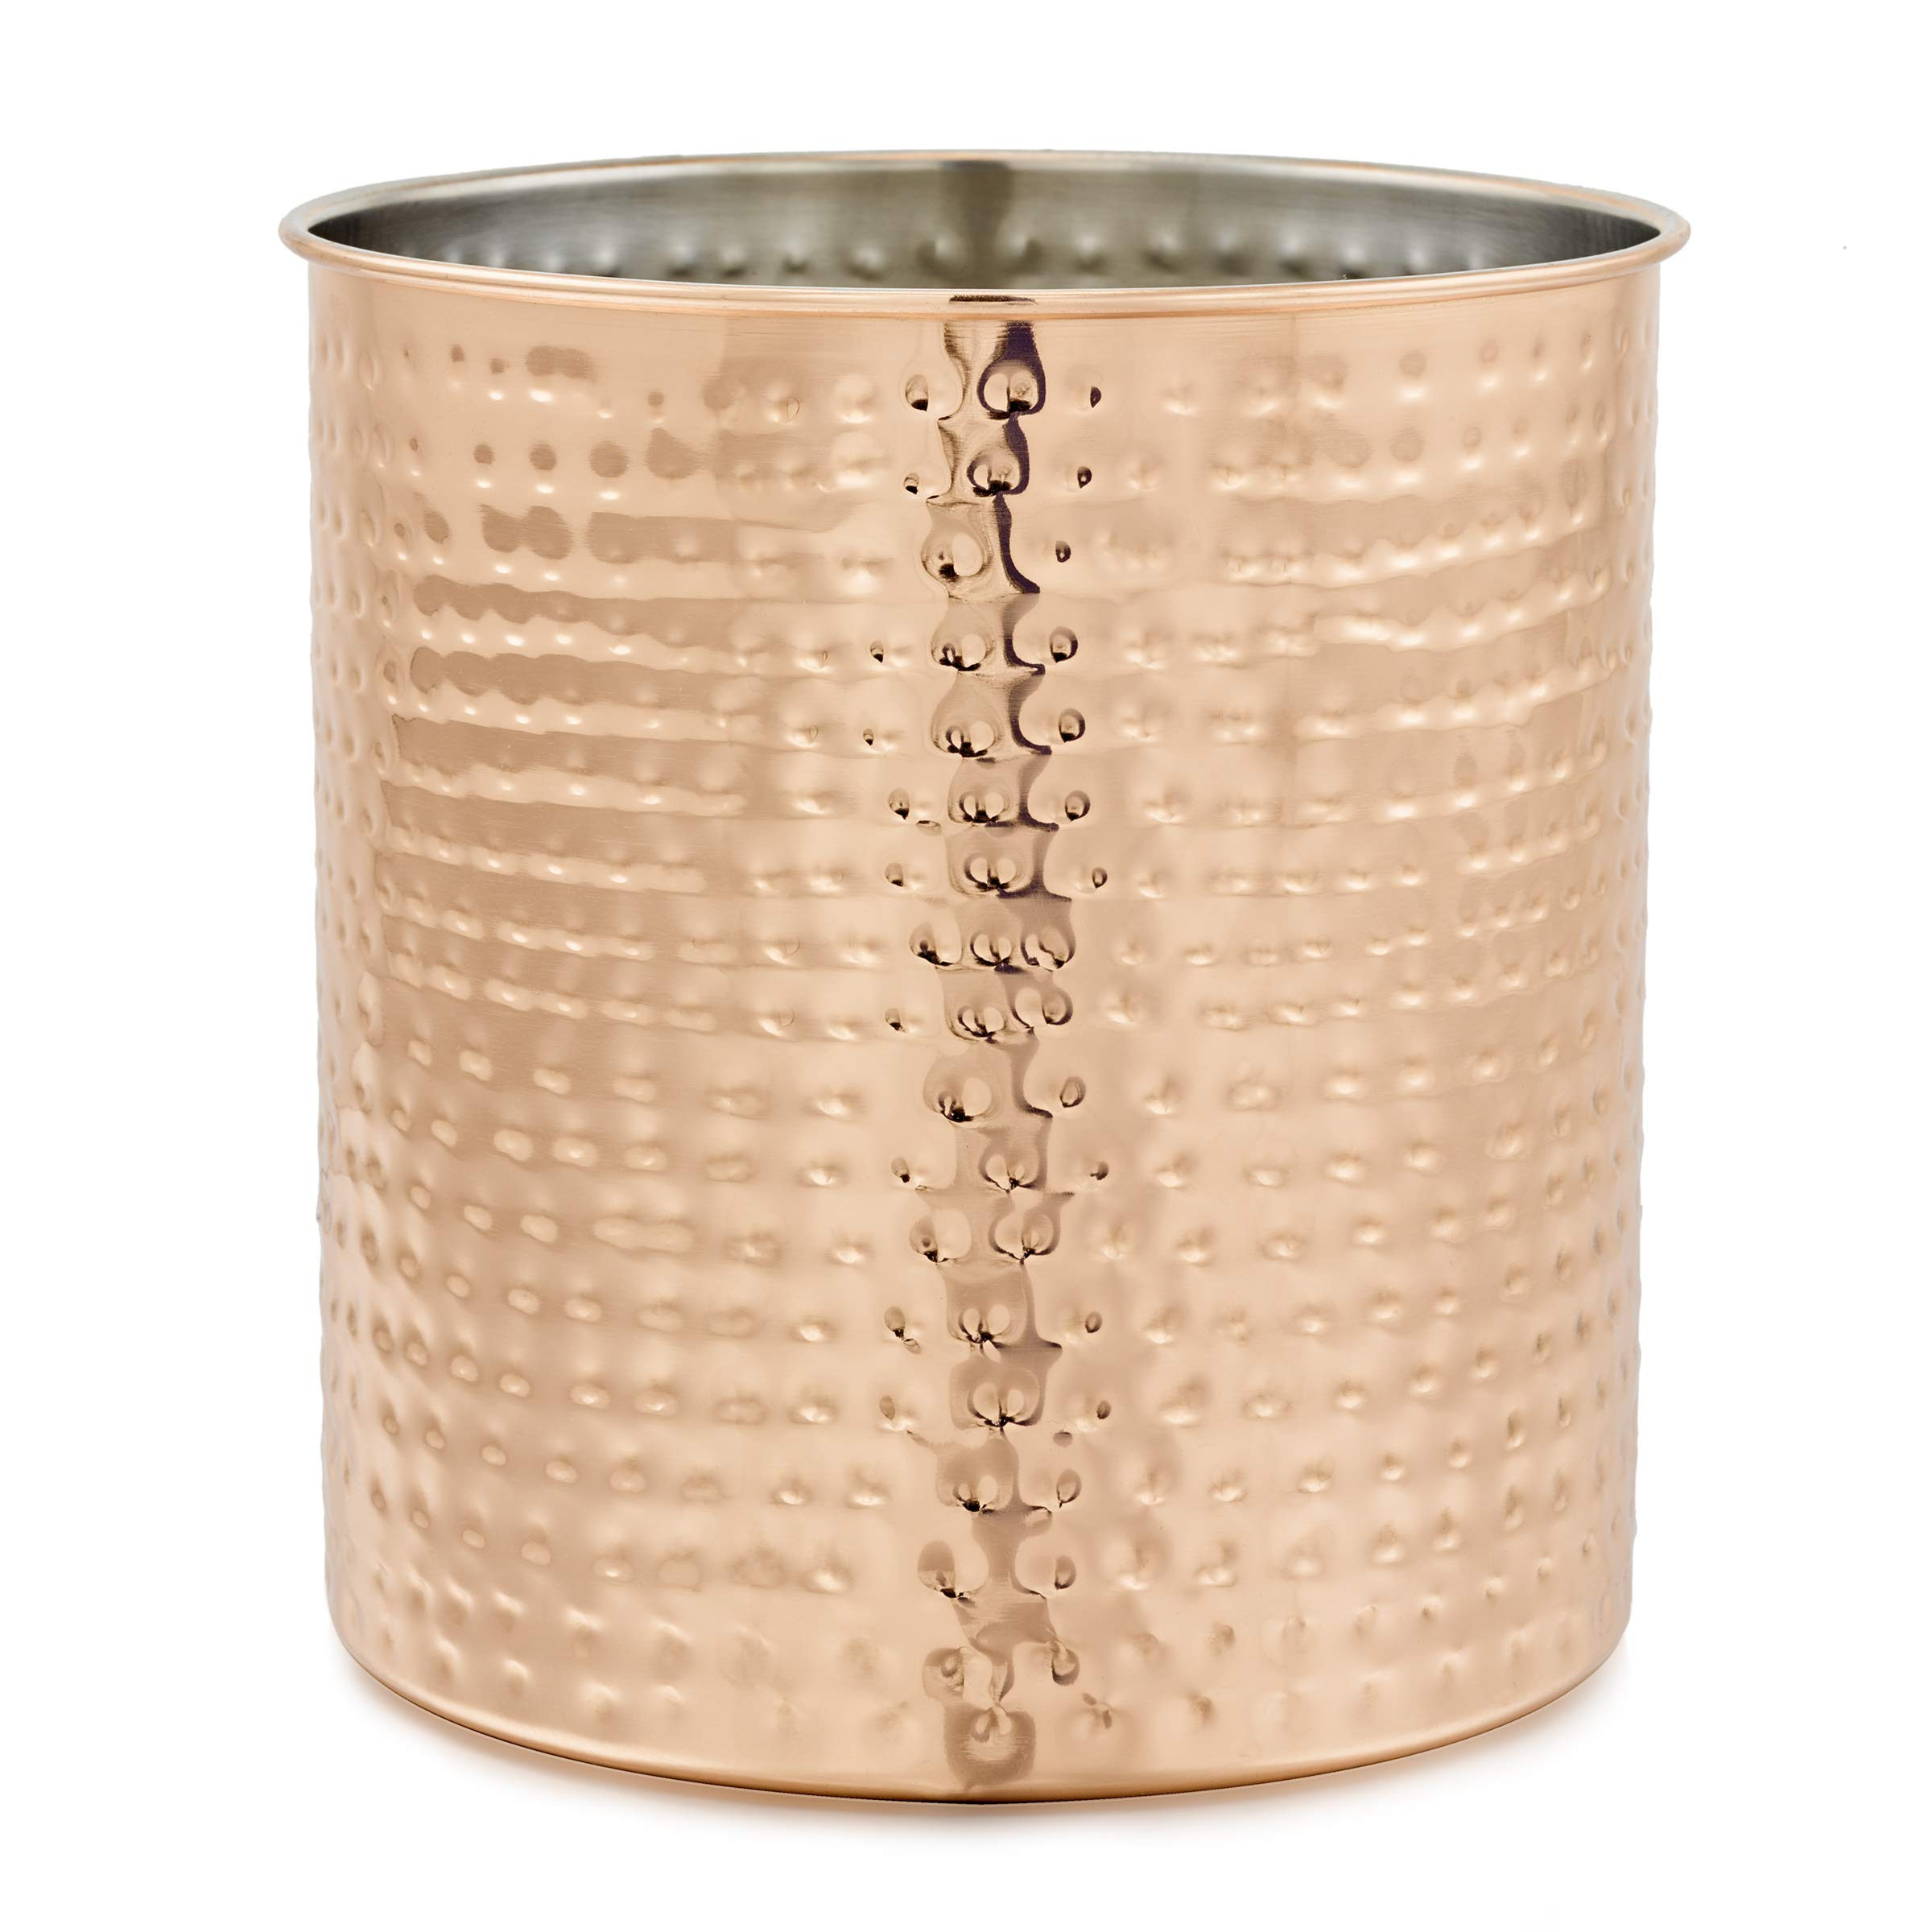 Old Dutch 849JB Jumbo Hammered Copper H x 7'' Dia. Utensil Holder, 7x7x7.5, by Old Dutch